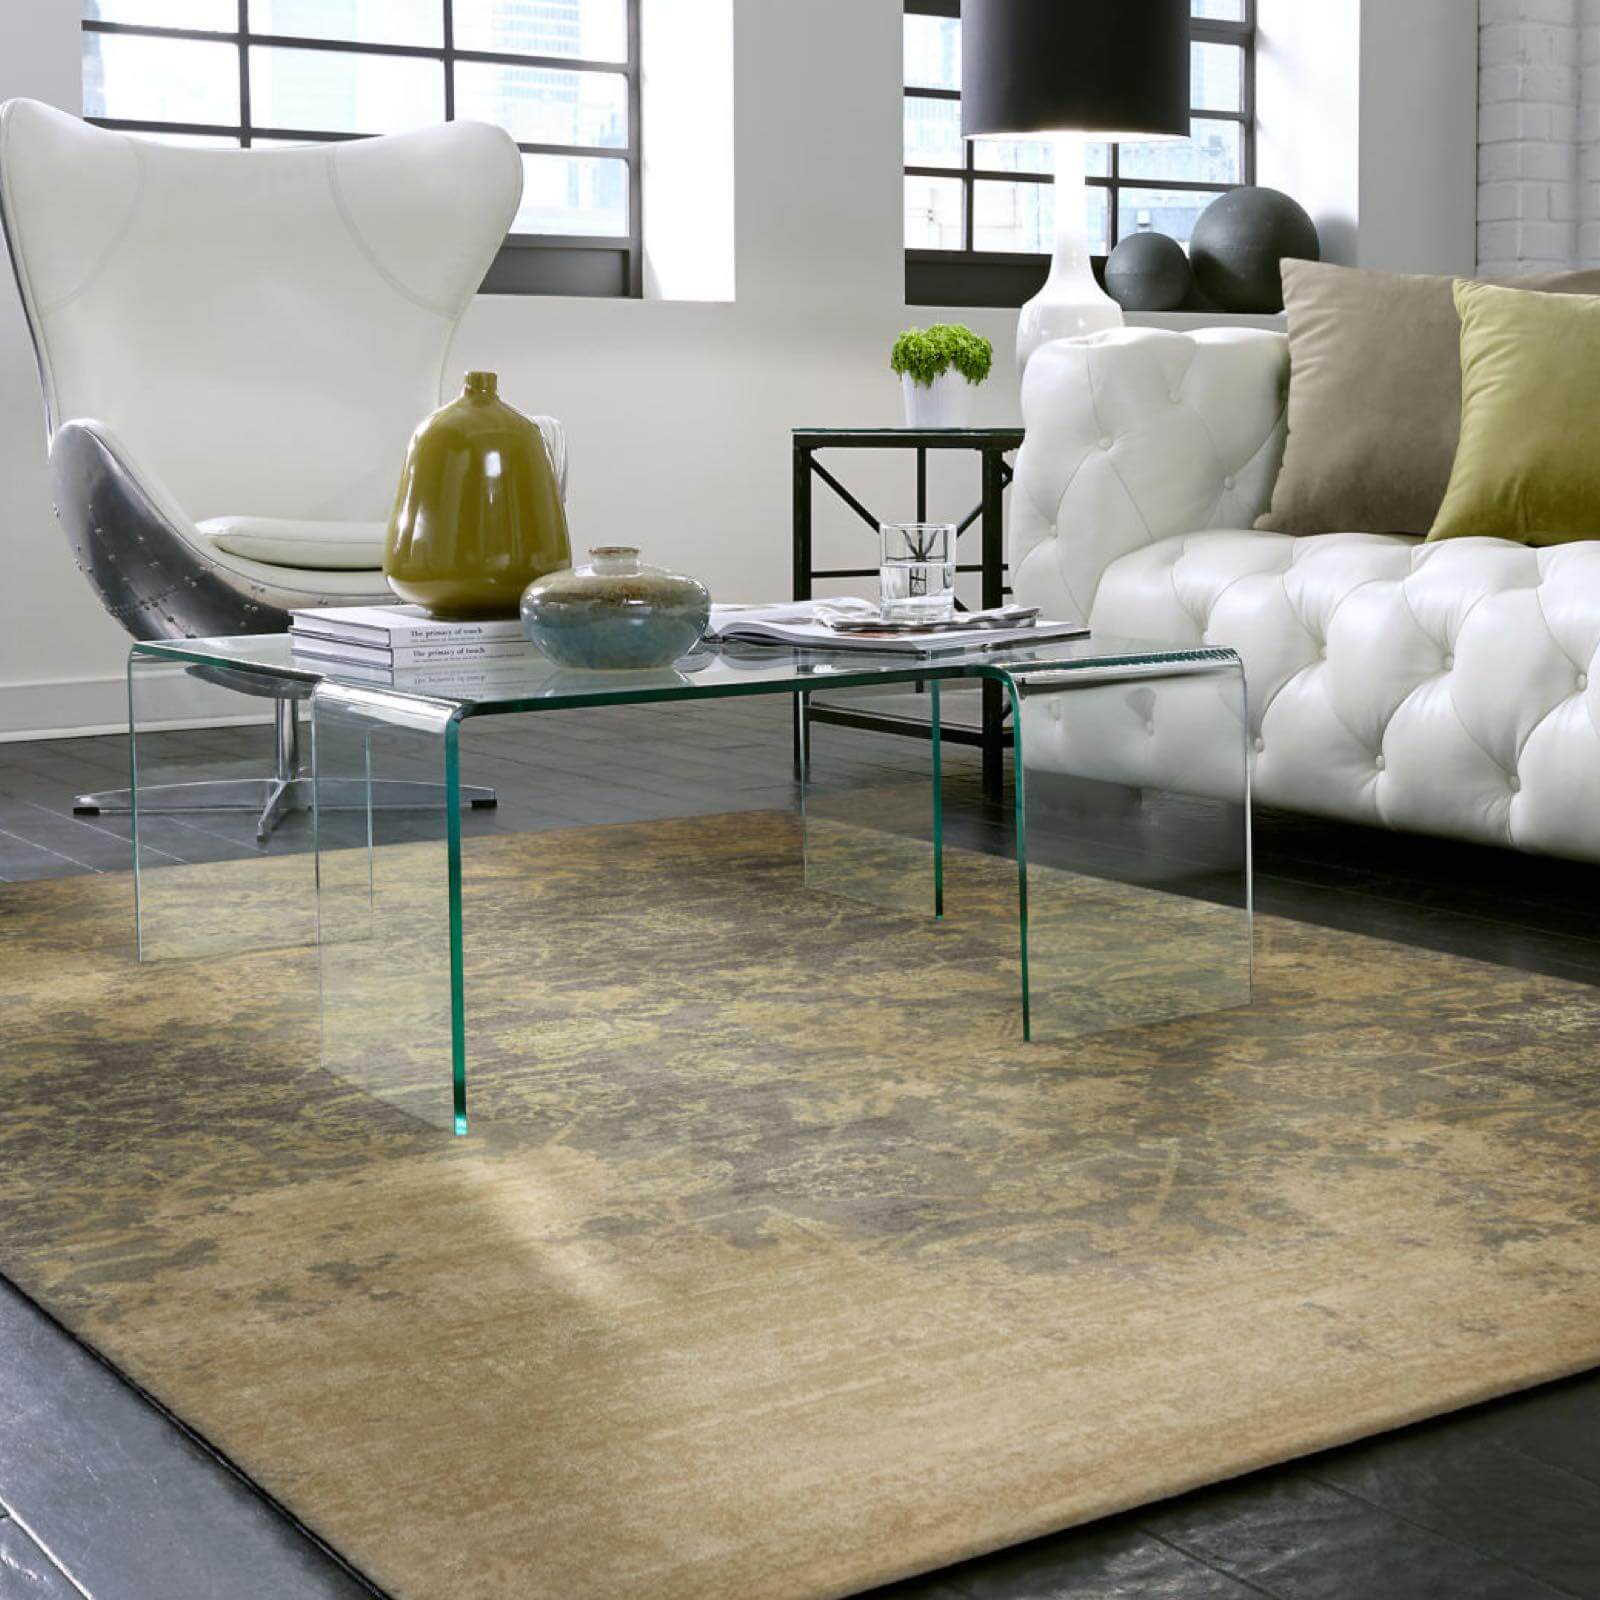 karastan_bari-room | McSwain Carpet & Floors